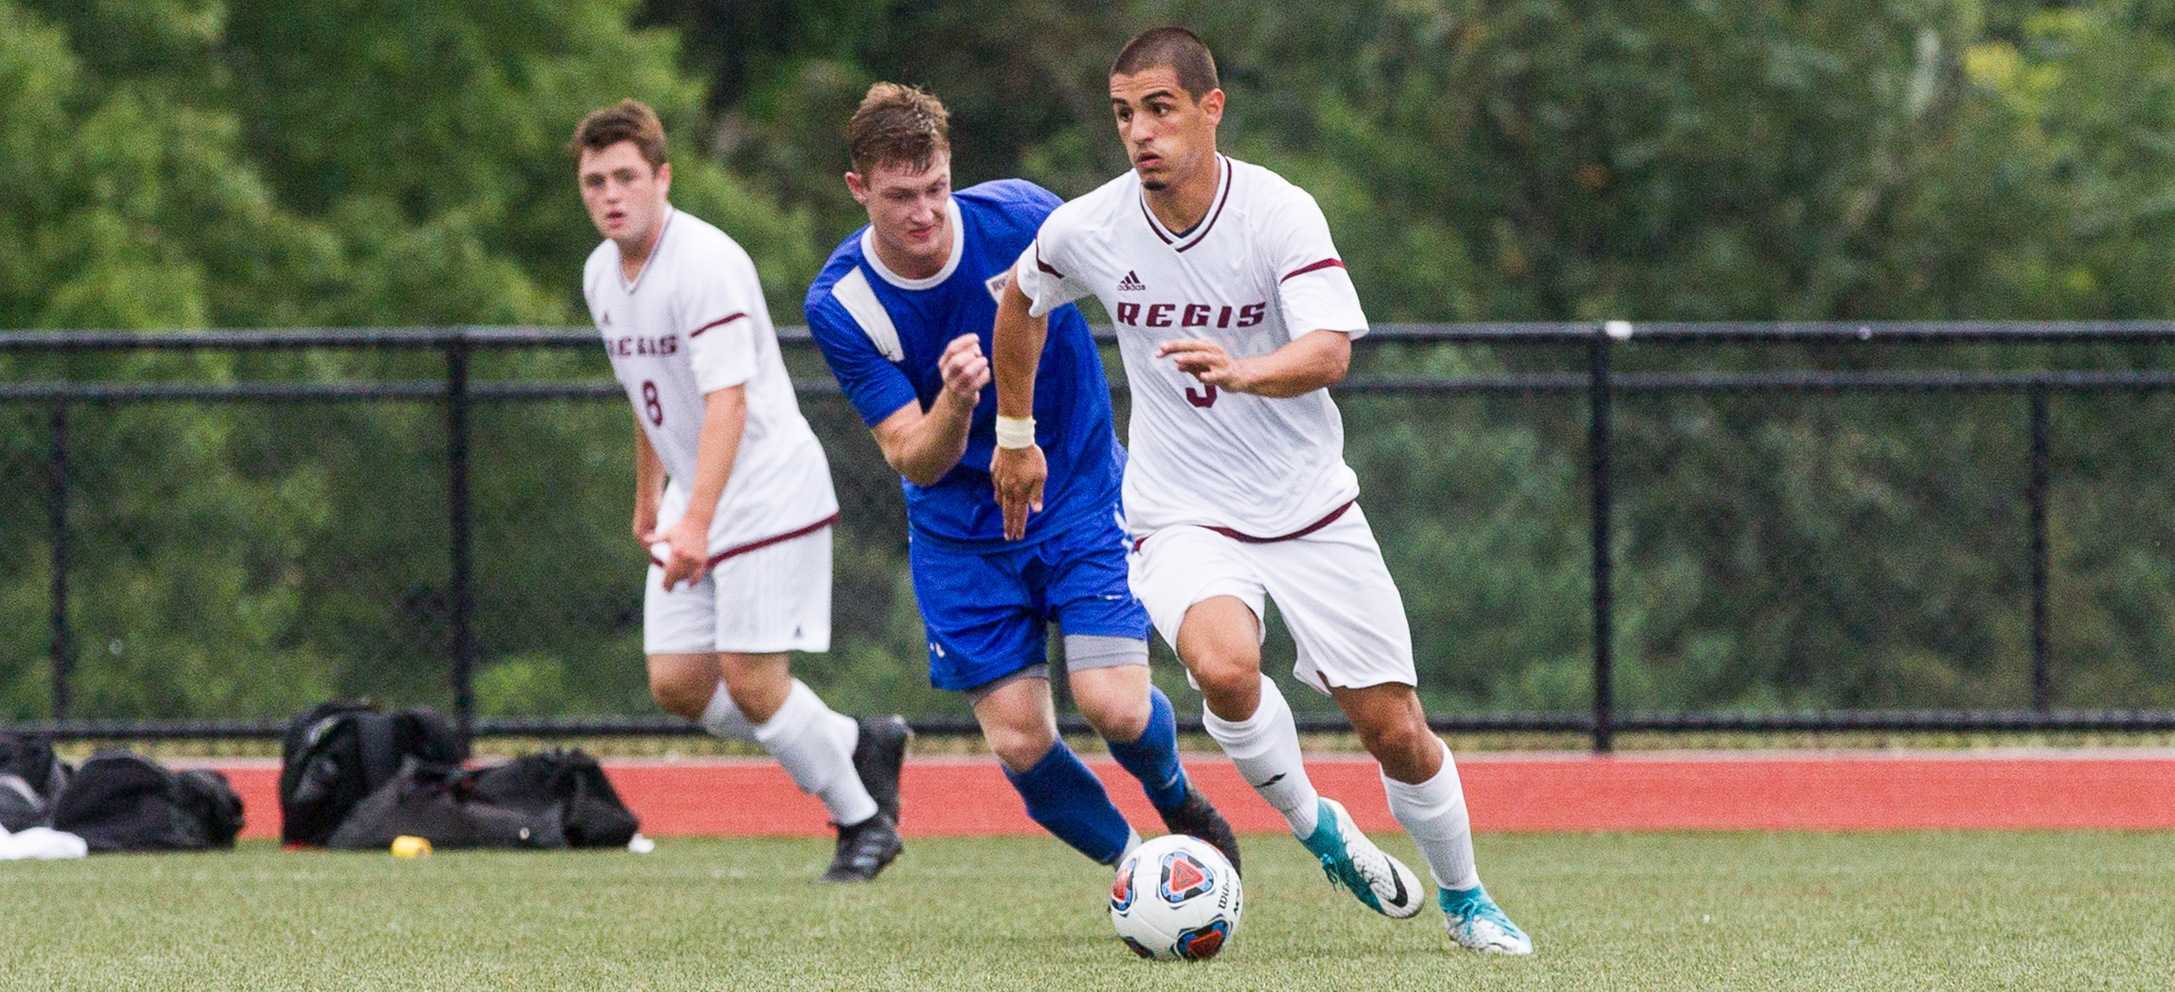 Furbino Nets Two, Men's Soccer Too Much For Becker